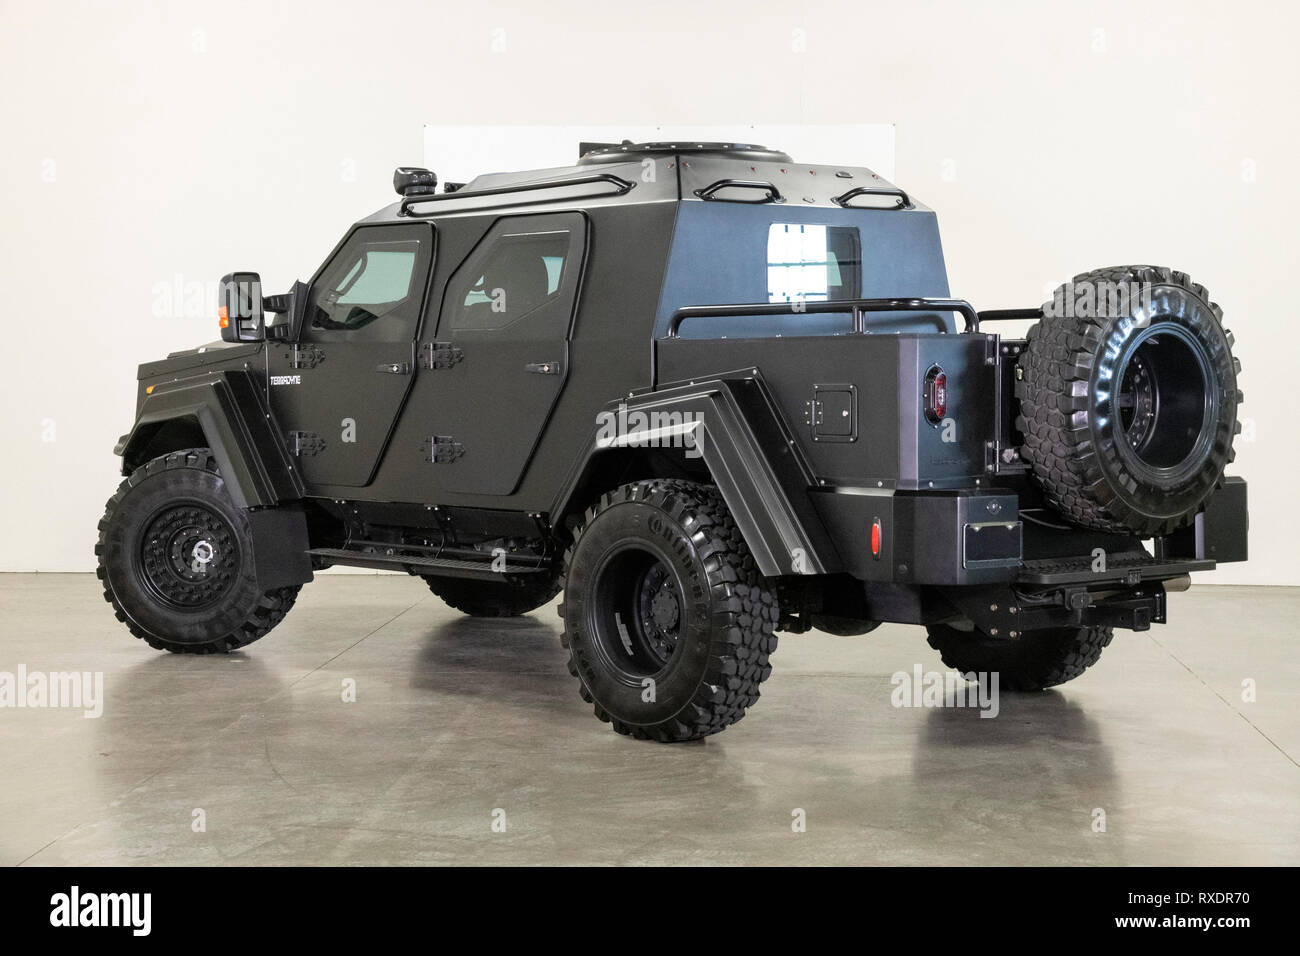 March 09, 2019: 2015 Ford Gurkha F-450SD Terradyne 4WD 2015 Terradyne Gurkha RPV complete with full ARMORED CLADDING! Paying homage to the Nepali Soldiers where it gets the name ''Gurkha'' and built for transporting a crew of 4, this RPV (Rapid Patrol Vehicle) is based on the Ford F-450 platform and is armored without exceeding the the maximum payload ratings of the Ford chassis! Powered by the 6.7L Turbo Diesel Power Stroke with 300 HP and 660 lb/ft torque, the original glass has been replaced by ballistic quality transparencies providing finishing touches on this truly ARMORED vehicle Albert - Stock Image